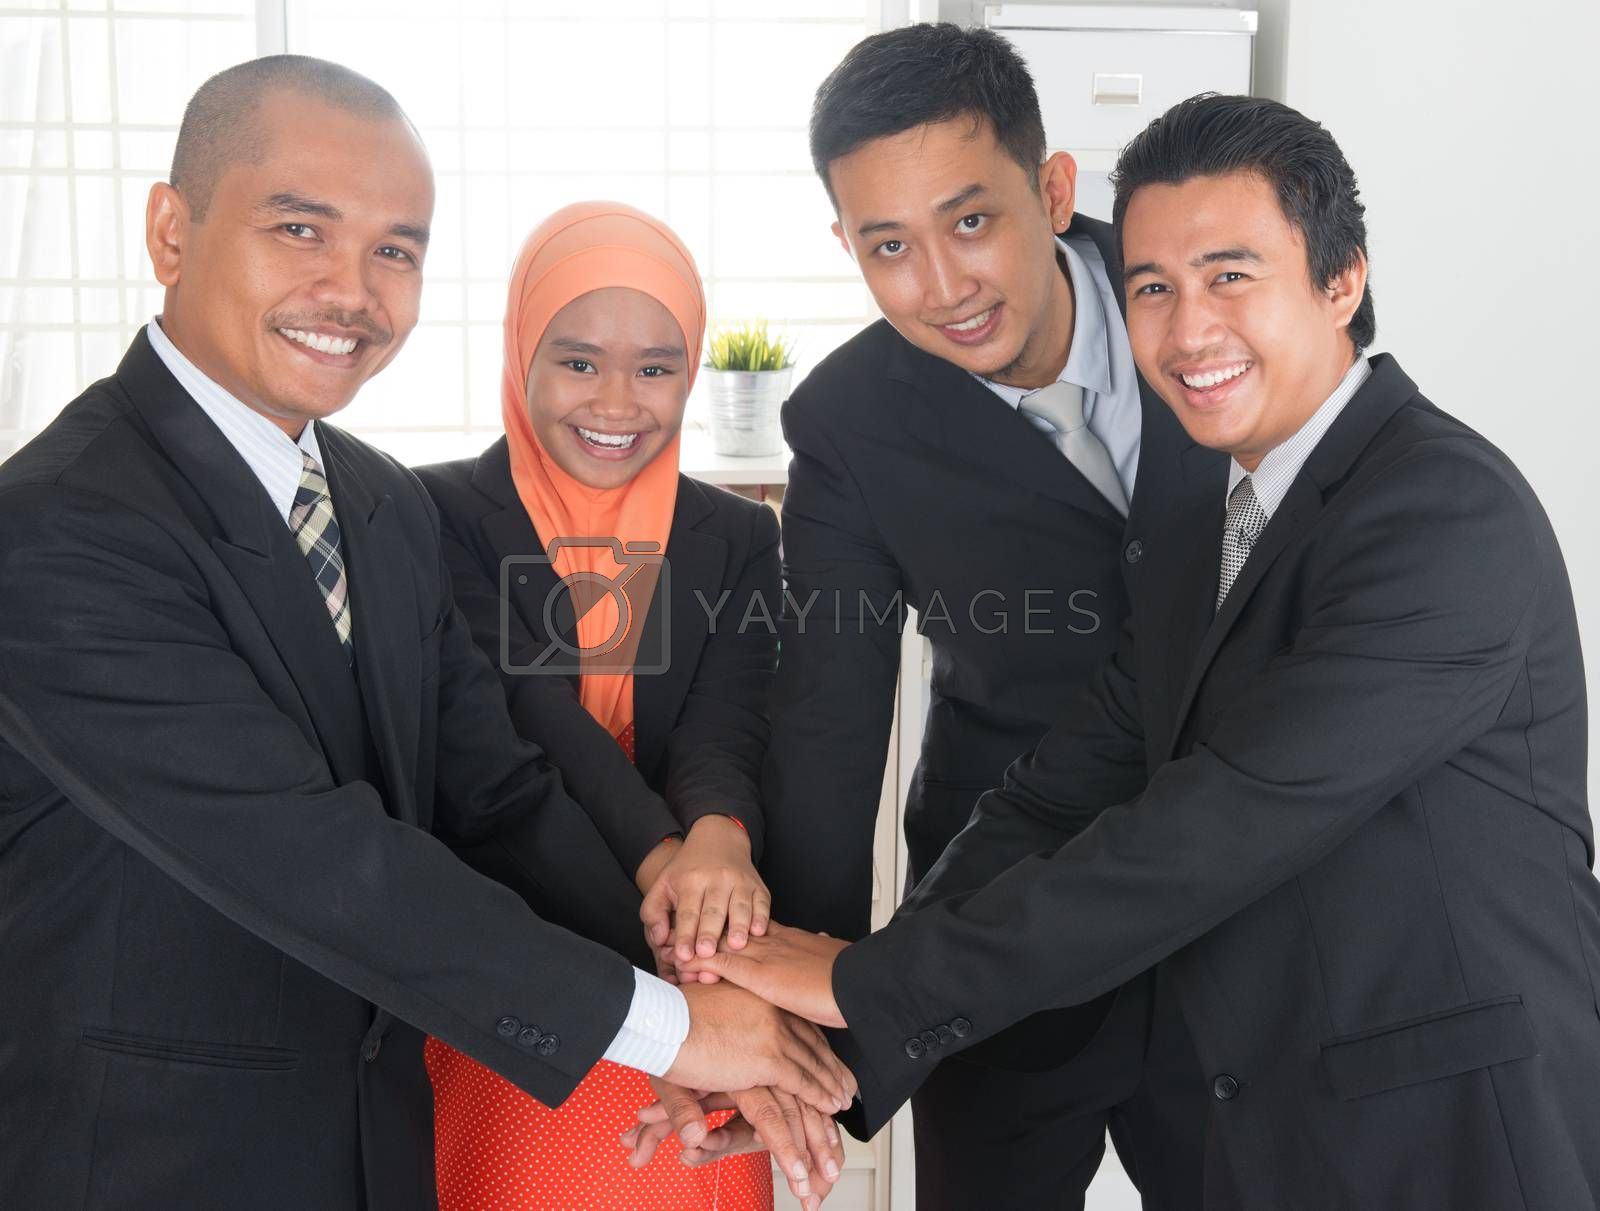 Group of business people having deals and stacking hands inside office room.